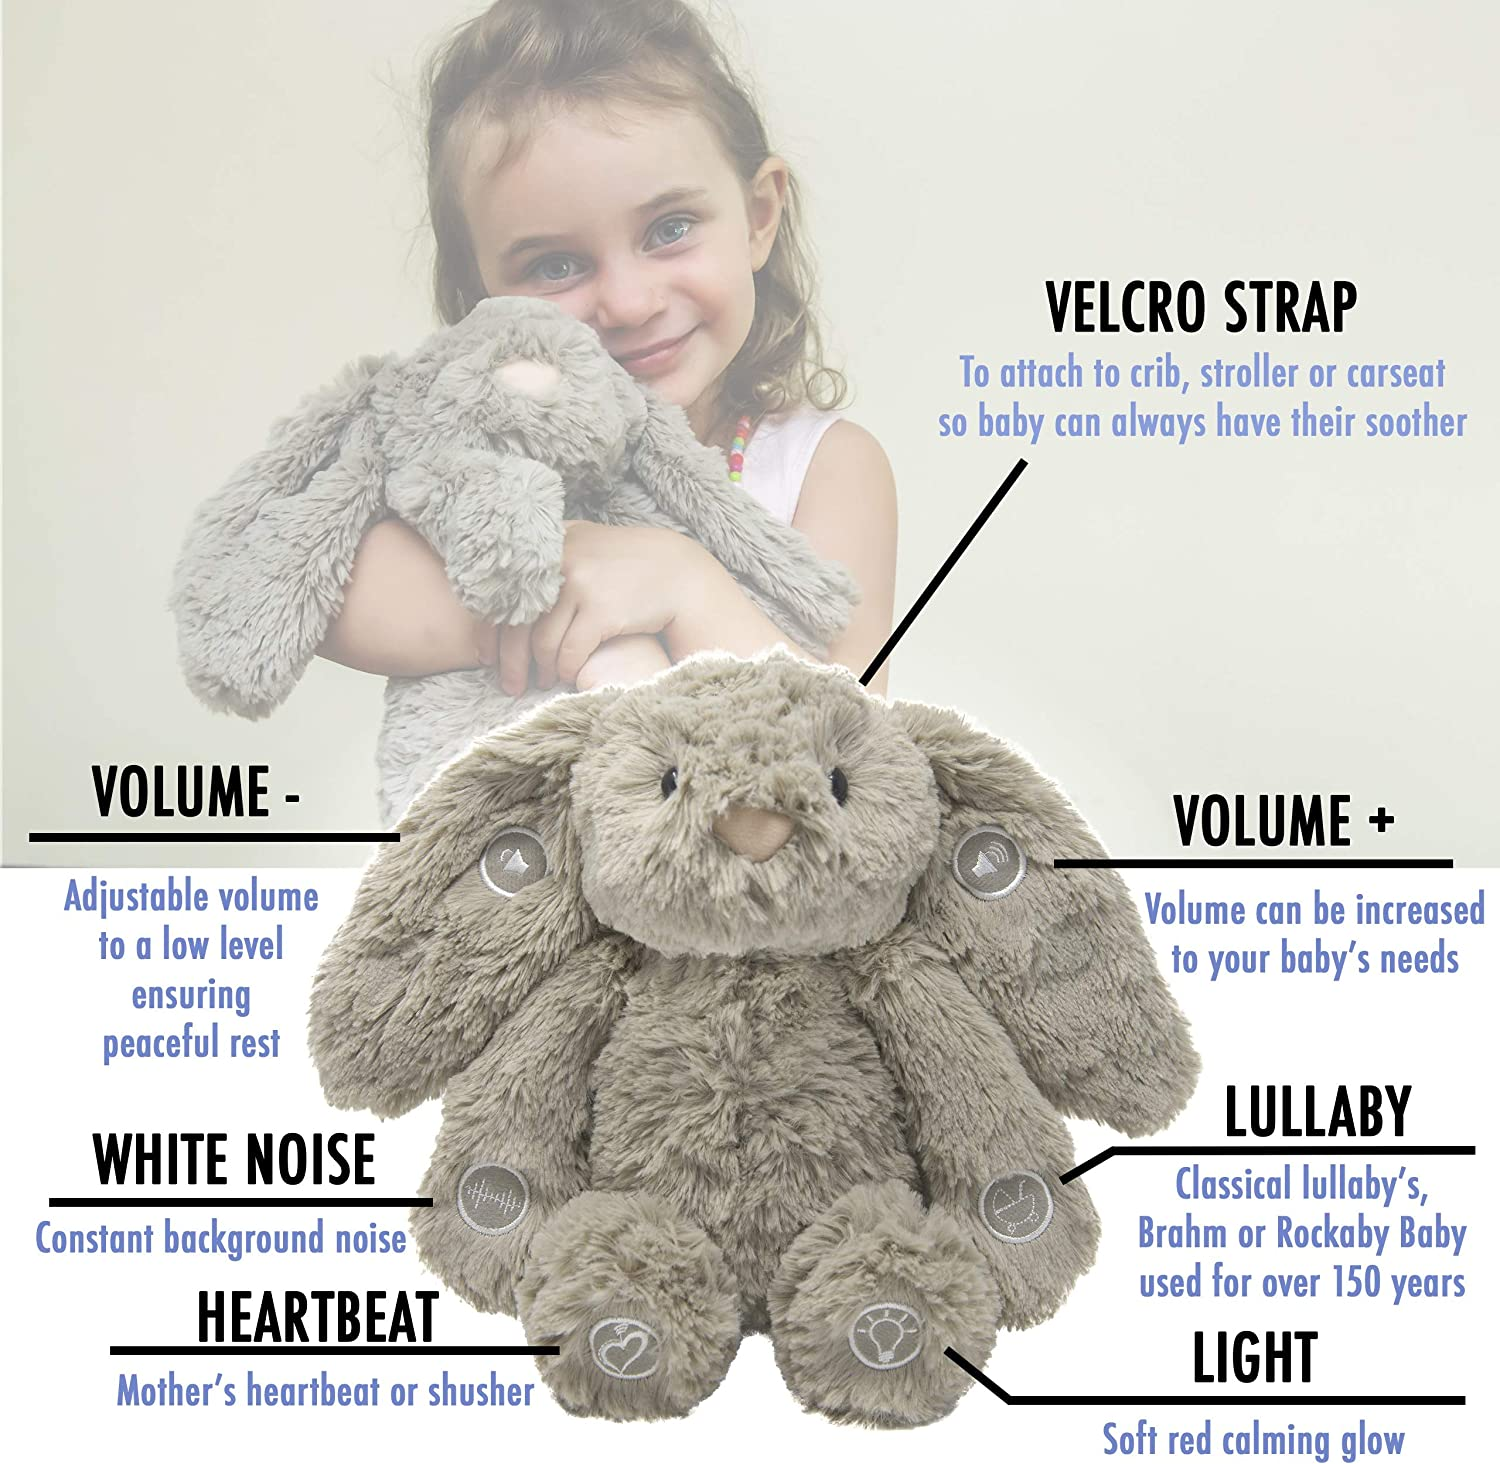 Plush Stuffed Animal for Newborn Infants Gemma Joy Bedtime Bunny Baby Soother with Cry Activated Sensor White Noise Calming Light Lullaby Music and Mother/'s Heartbeat